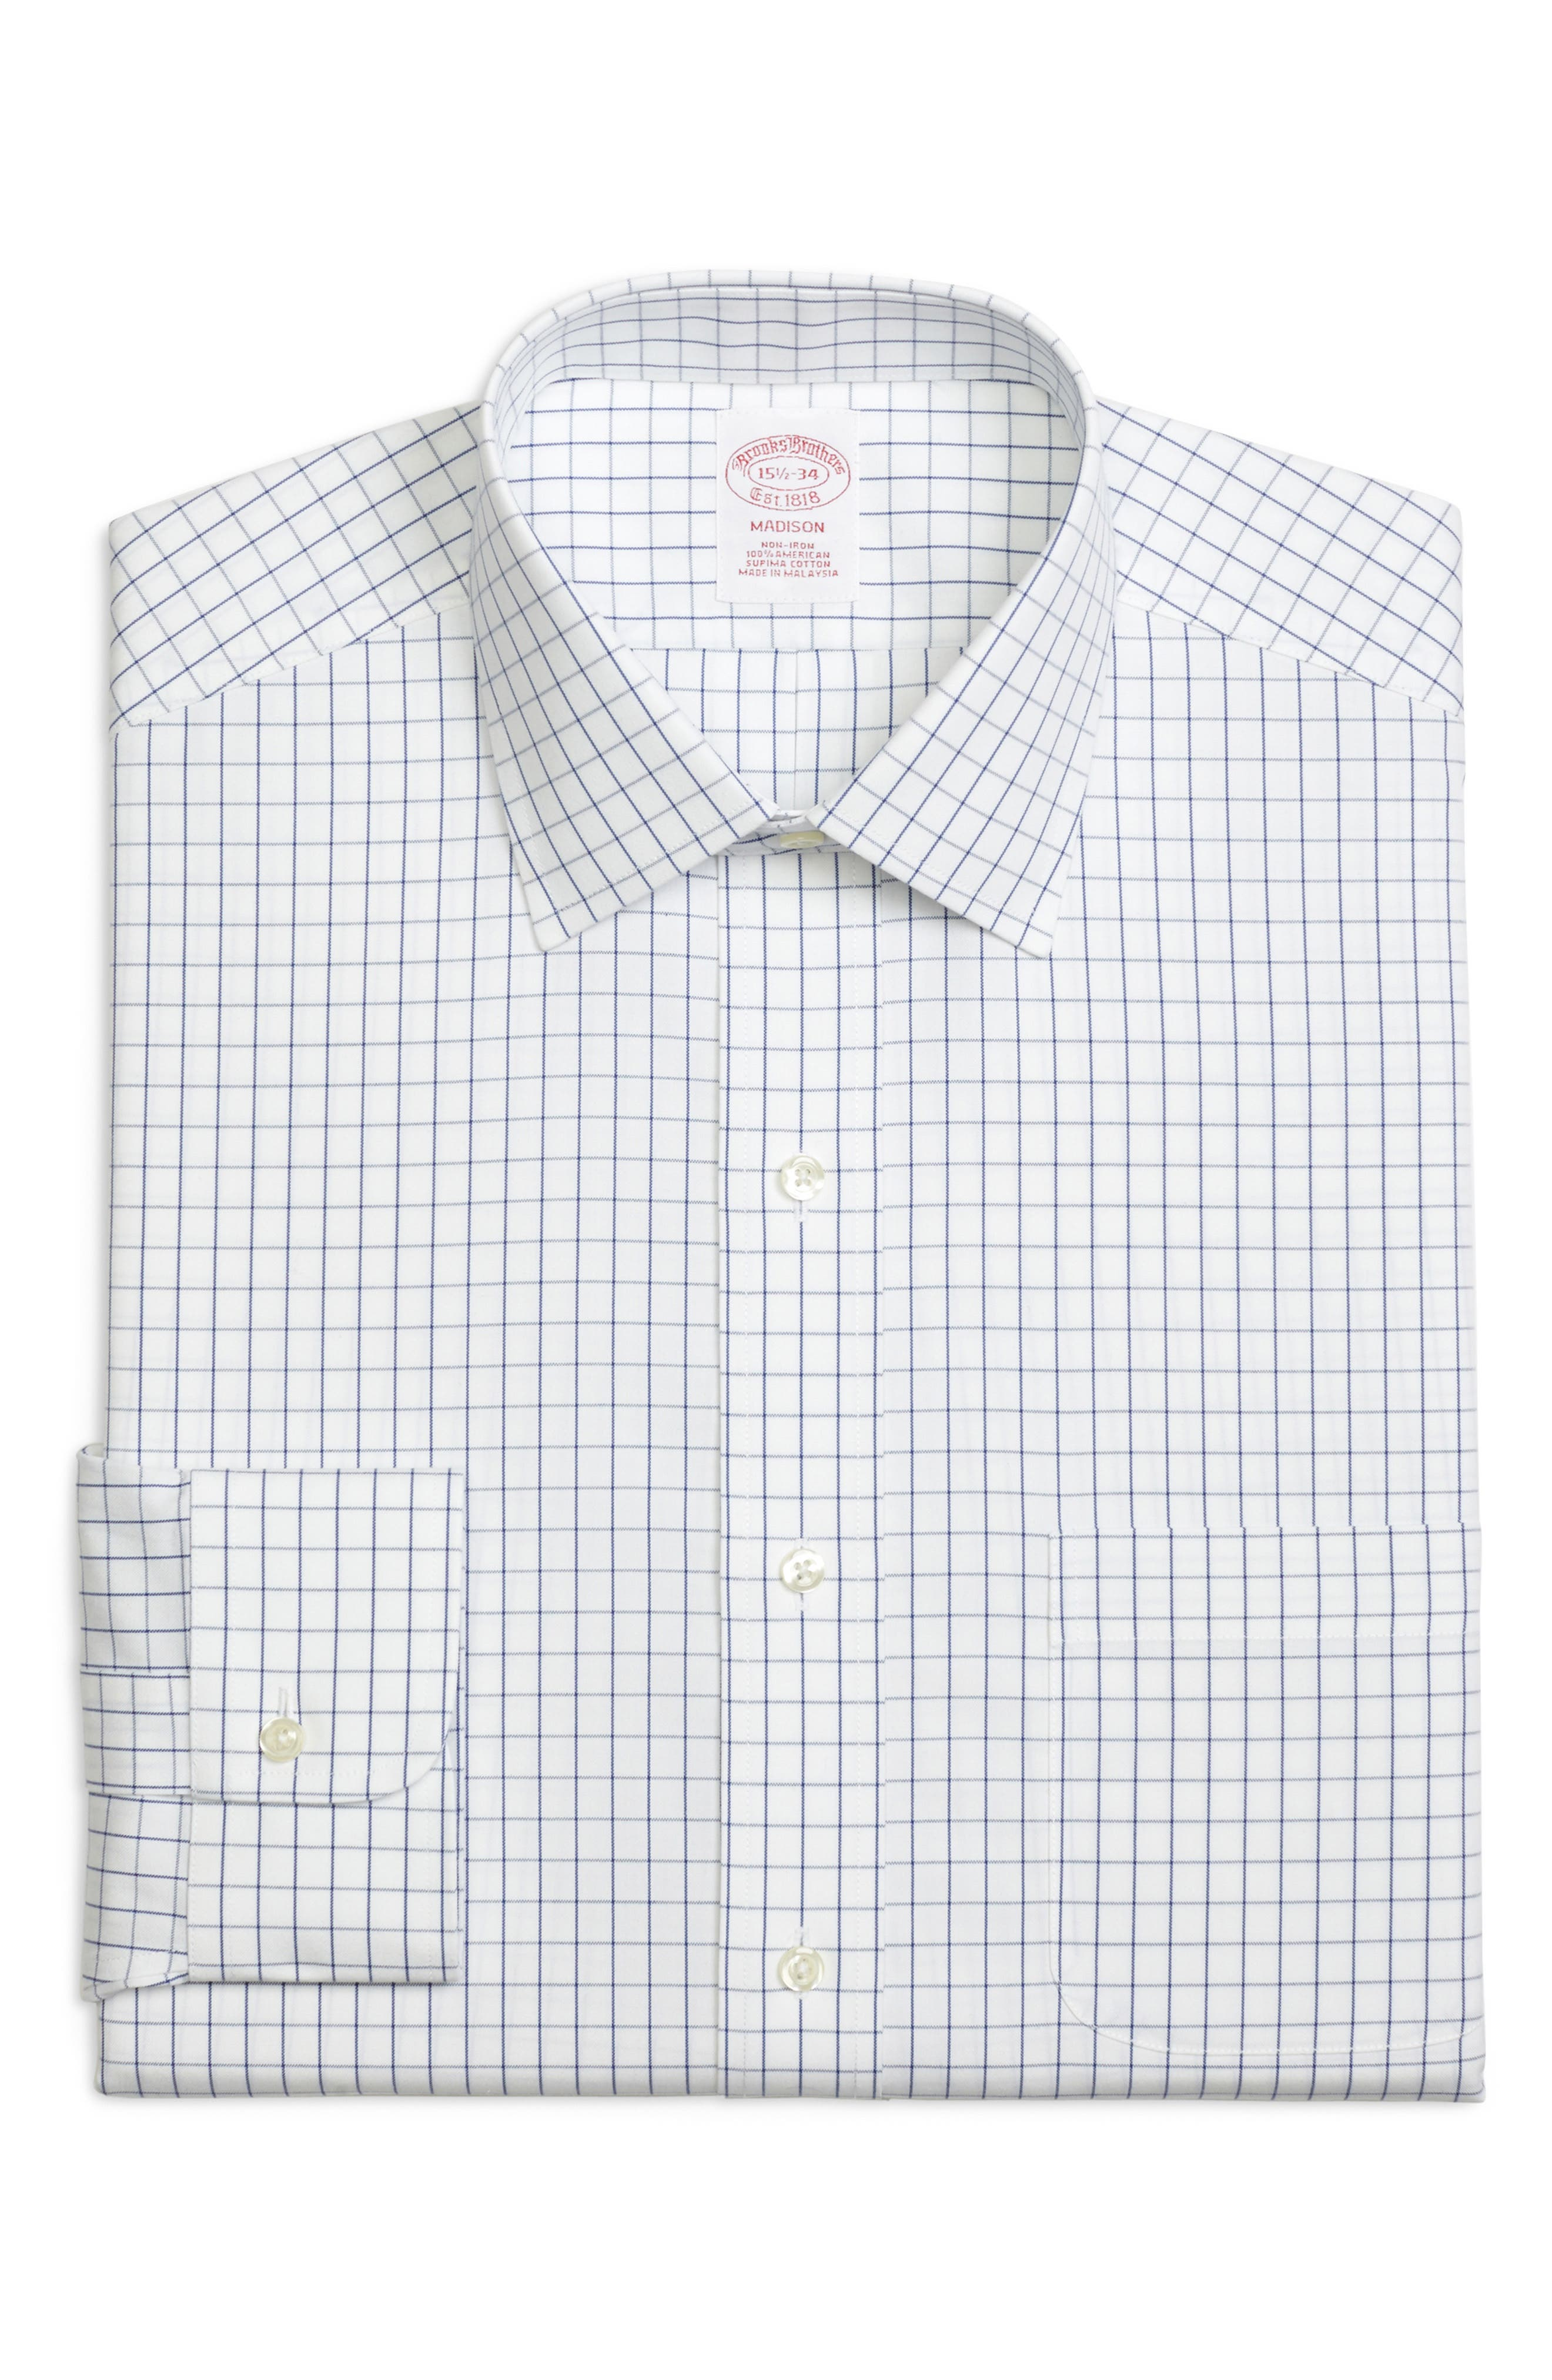 Classic Fit Check Dress Shirt,                         Main,                         color, BLUE